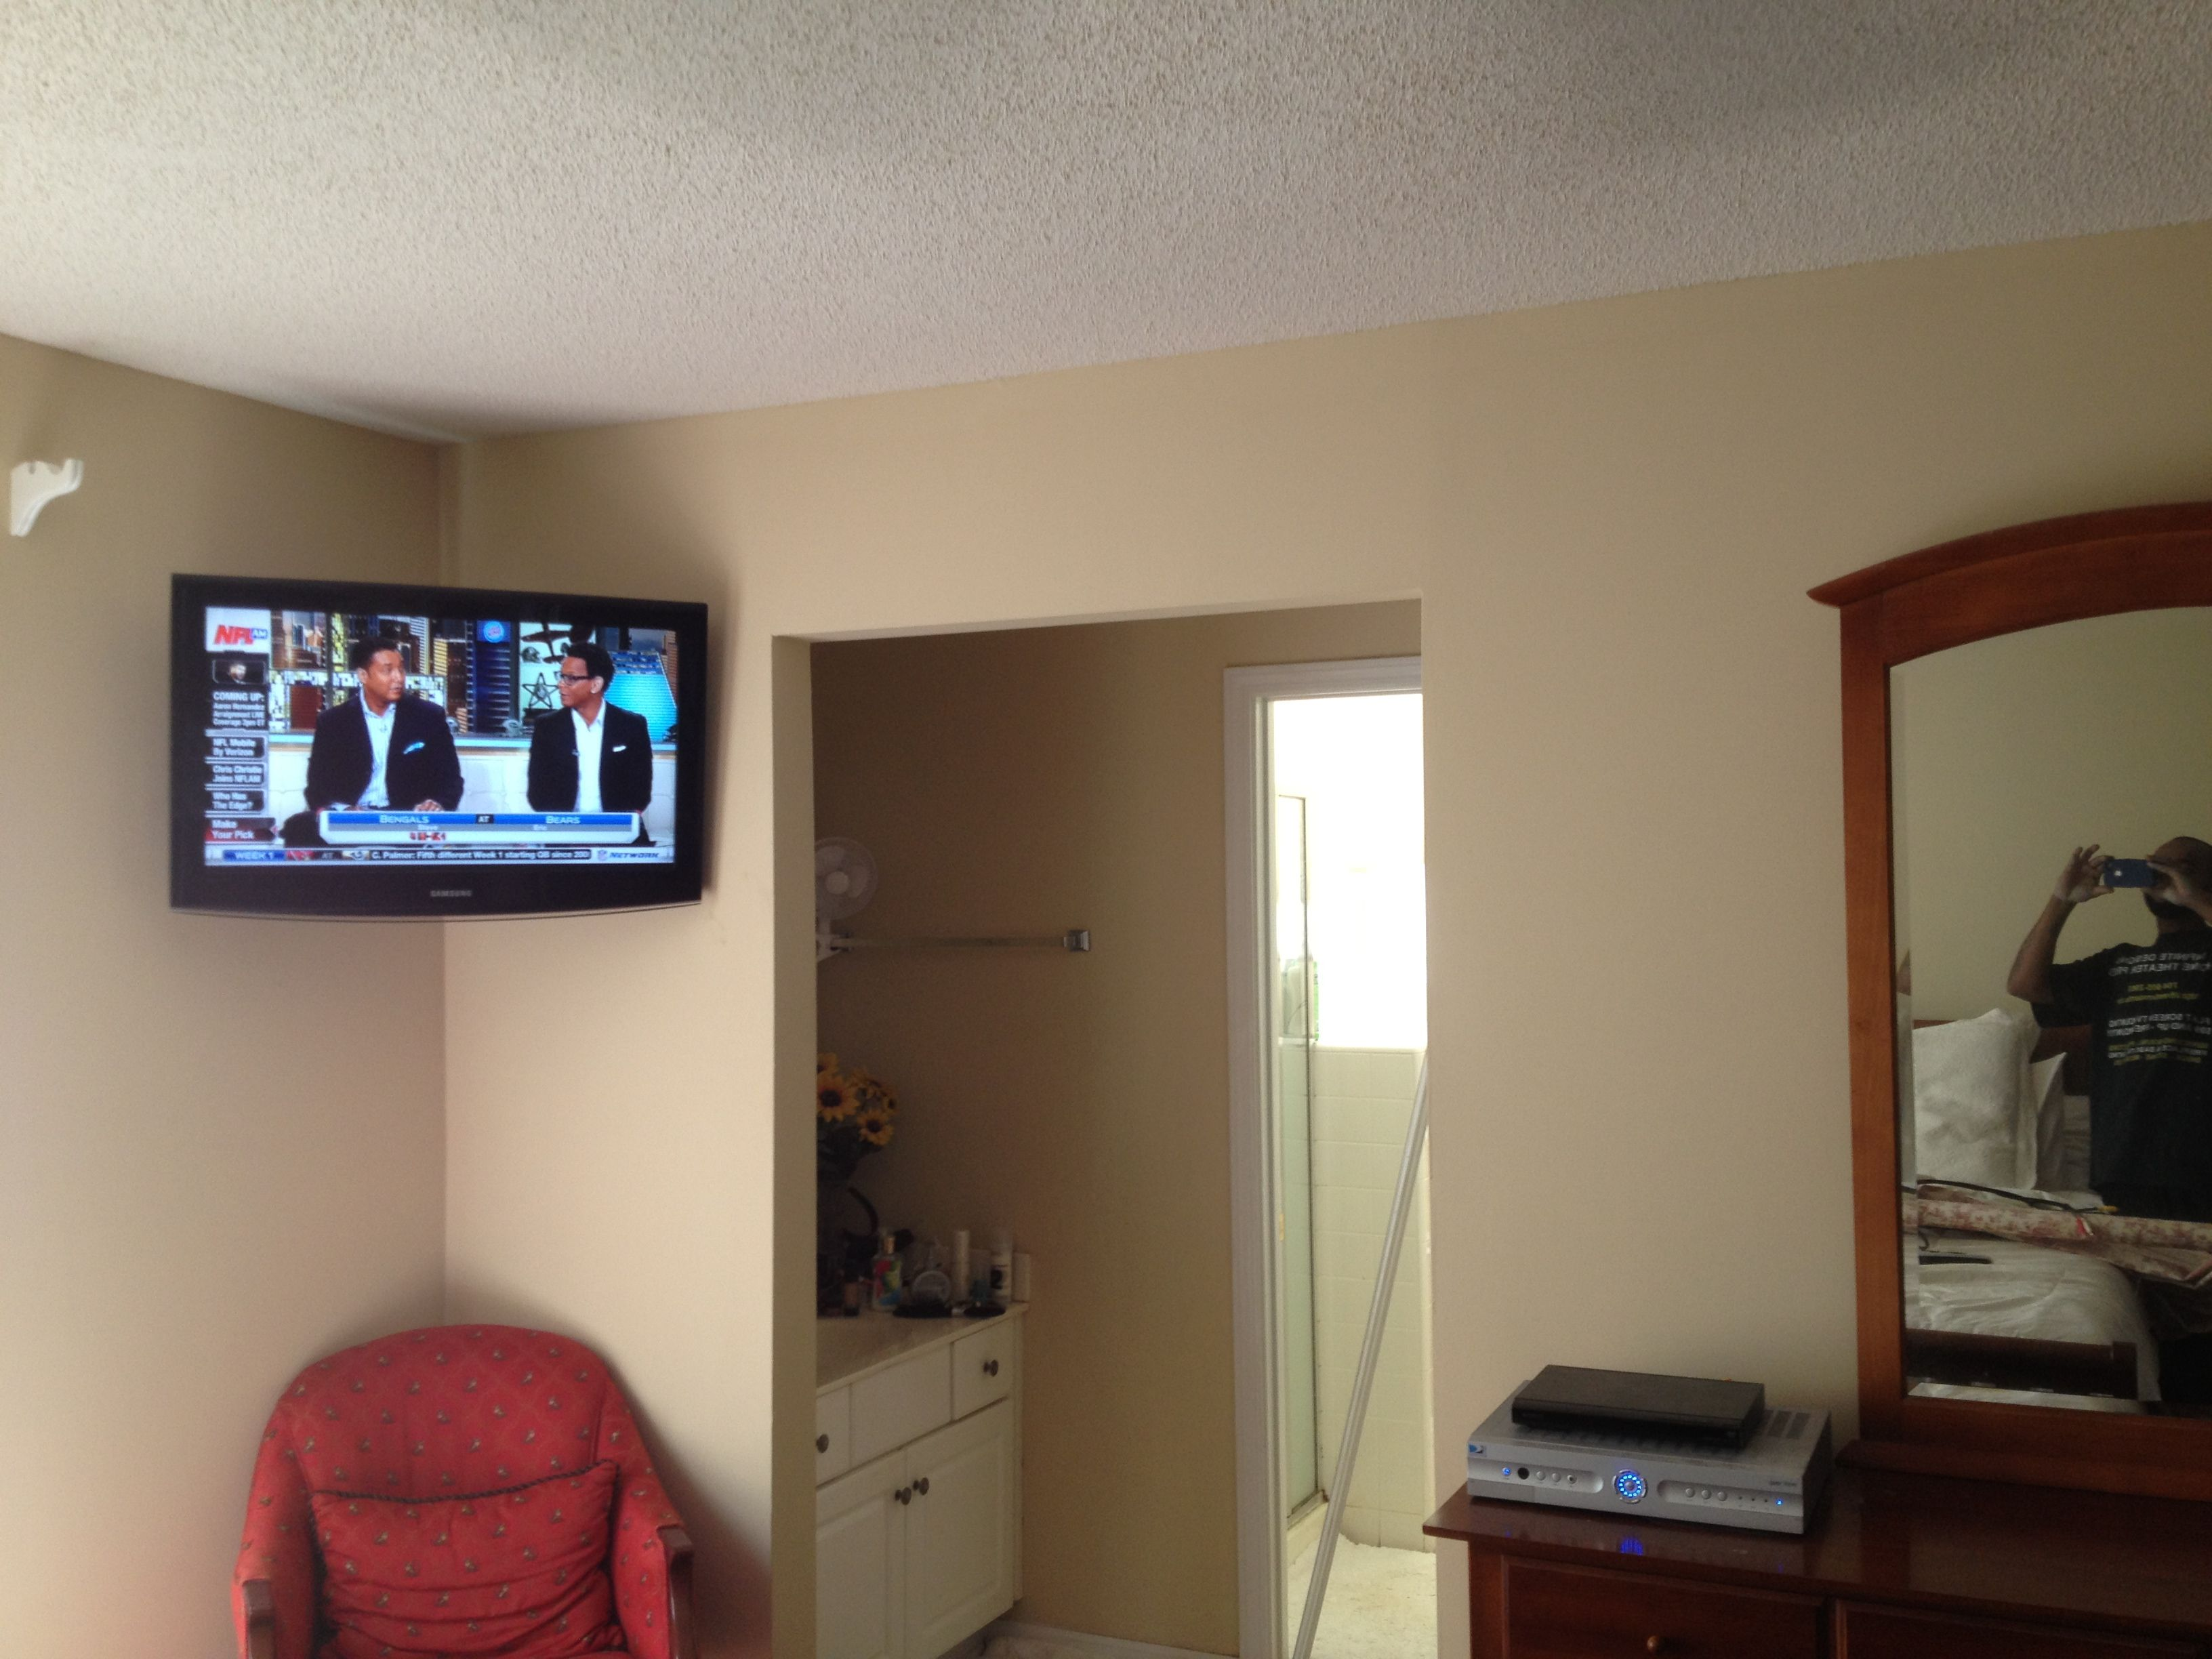 Charlotte Home Theater installation, projector, surround wiring, TV  mounting, Flatscreen TV,